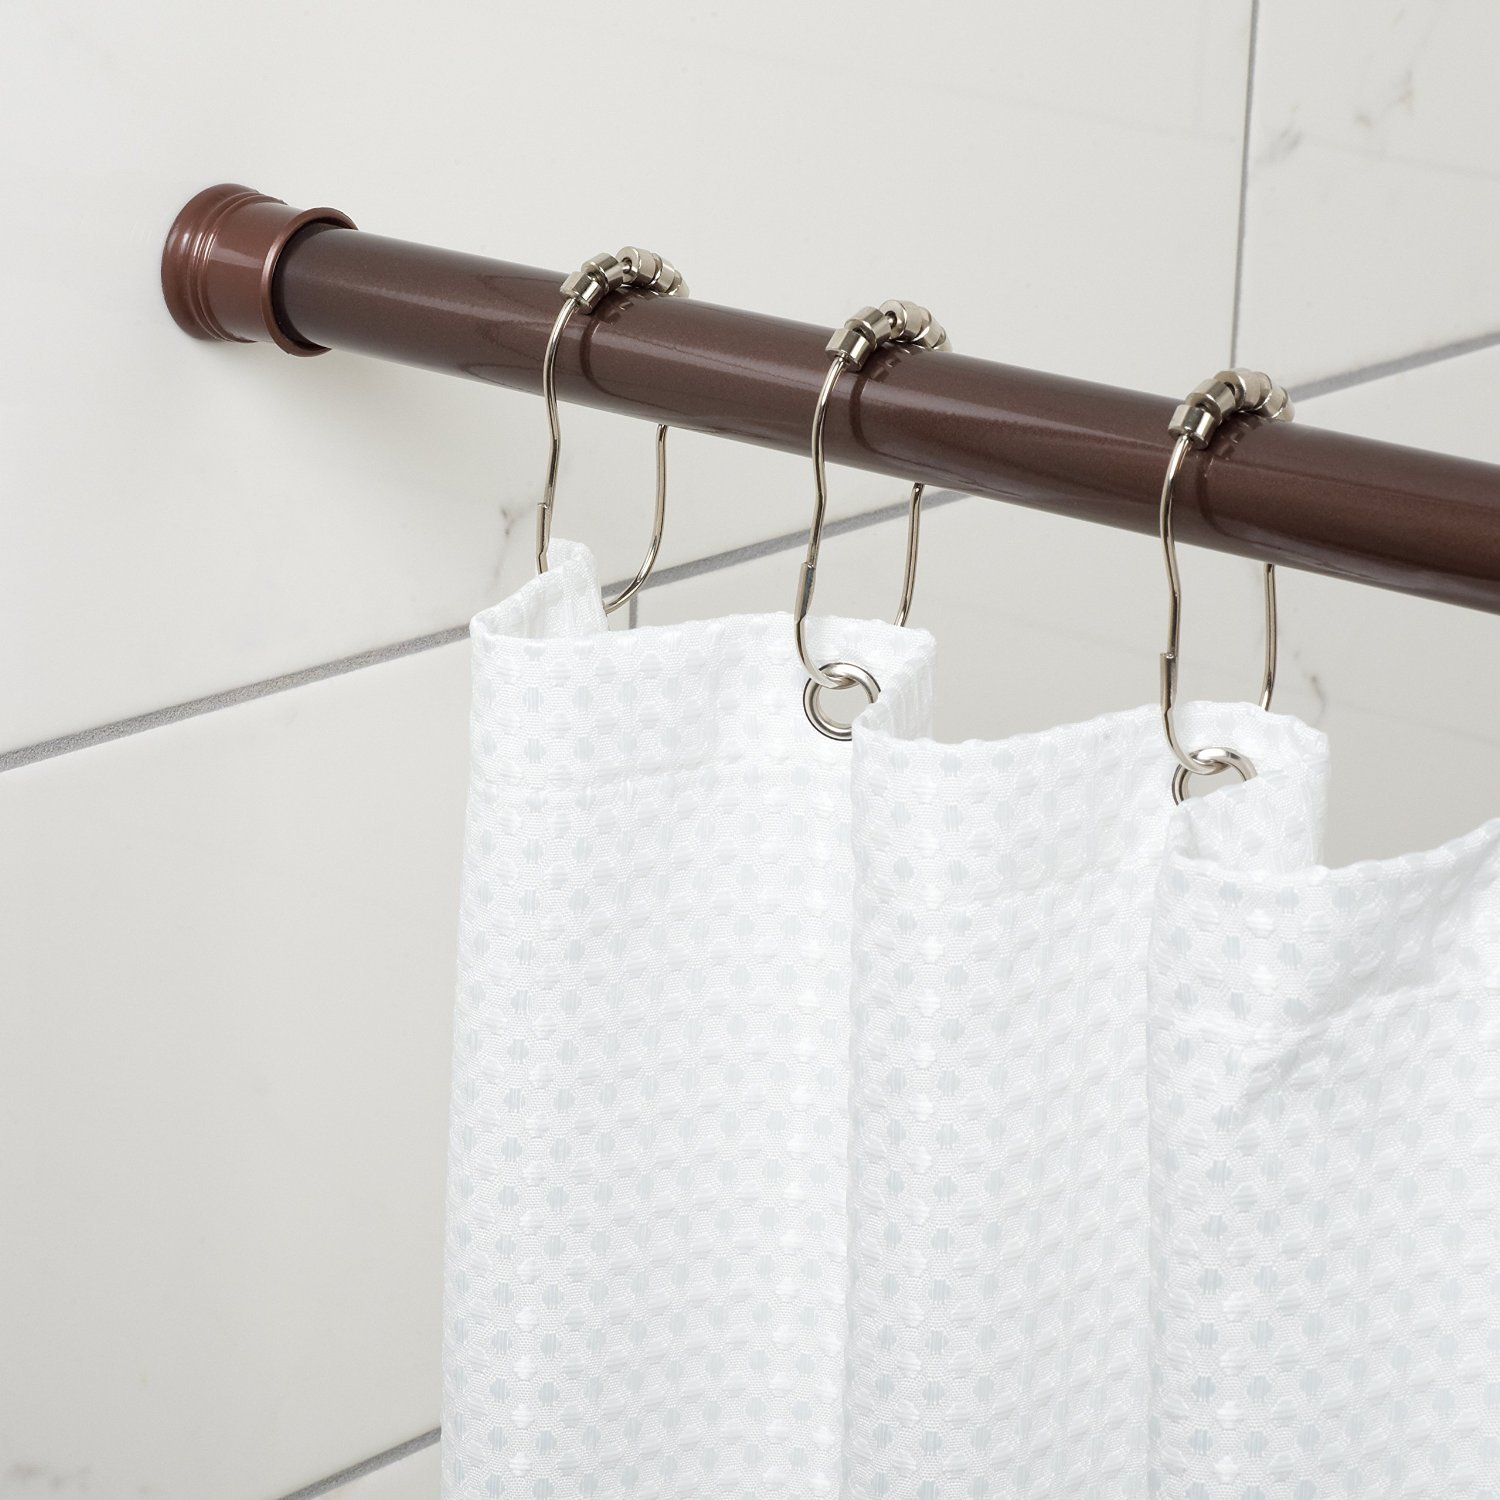 Amazon Adjustable Tension Mount Shower Curtain Rod Straight Oil Rubbed Bronze Home Kitchen